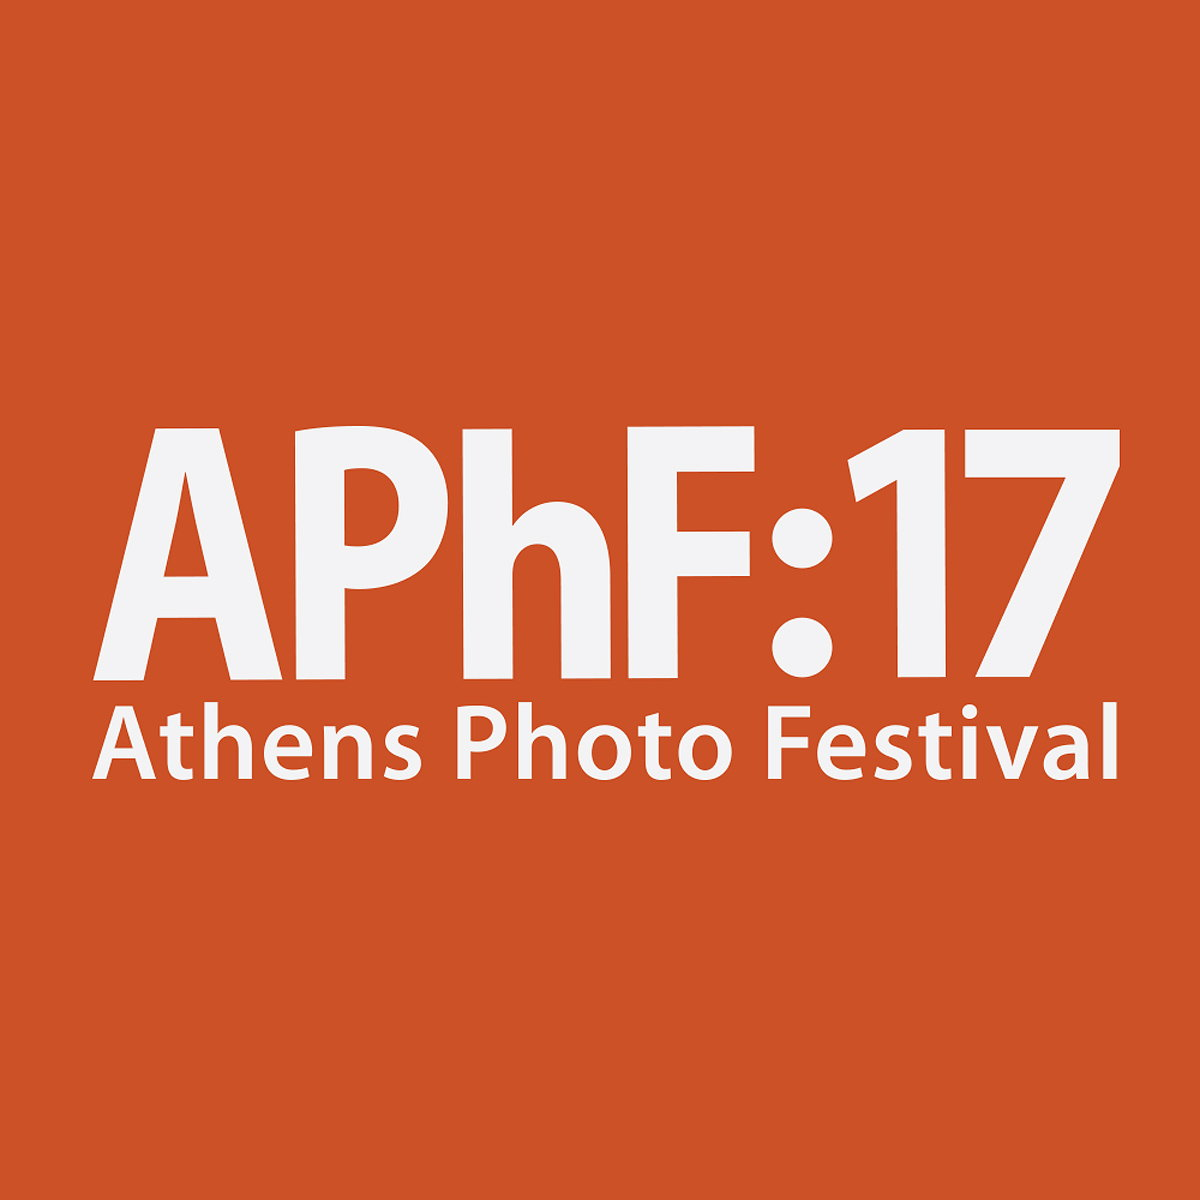 Athens Photo Festival 2017 - Call for Entries